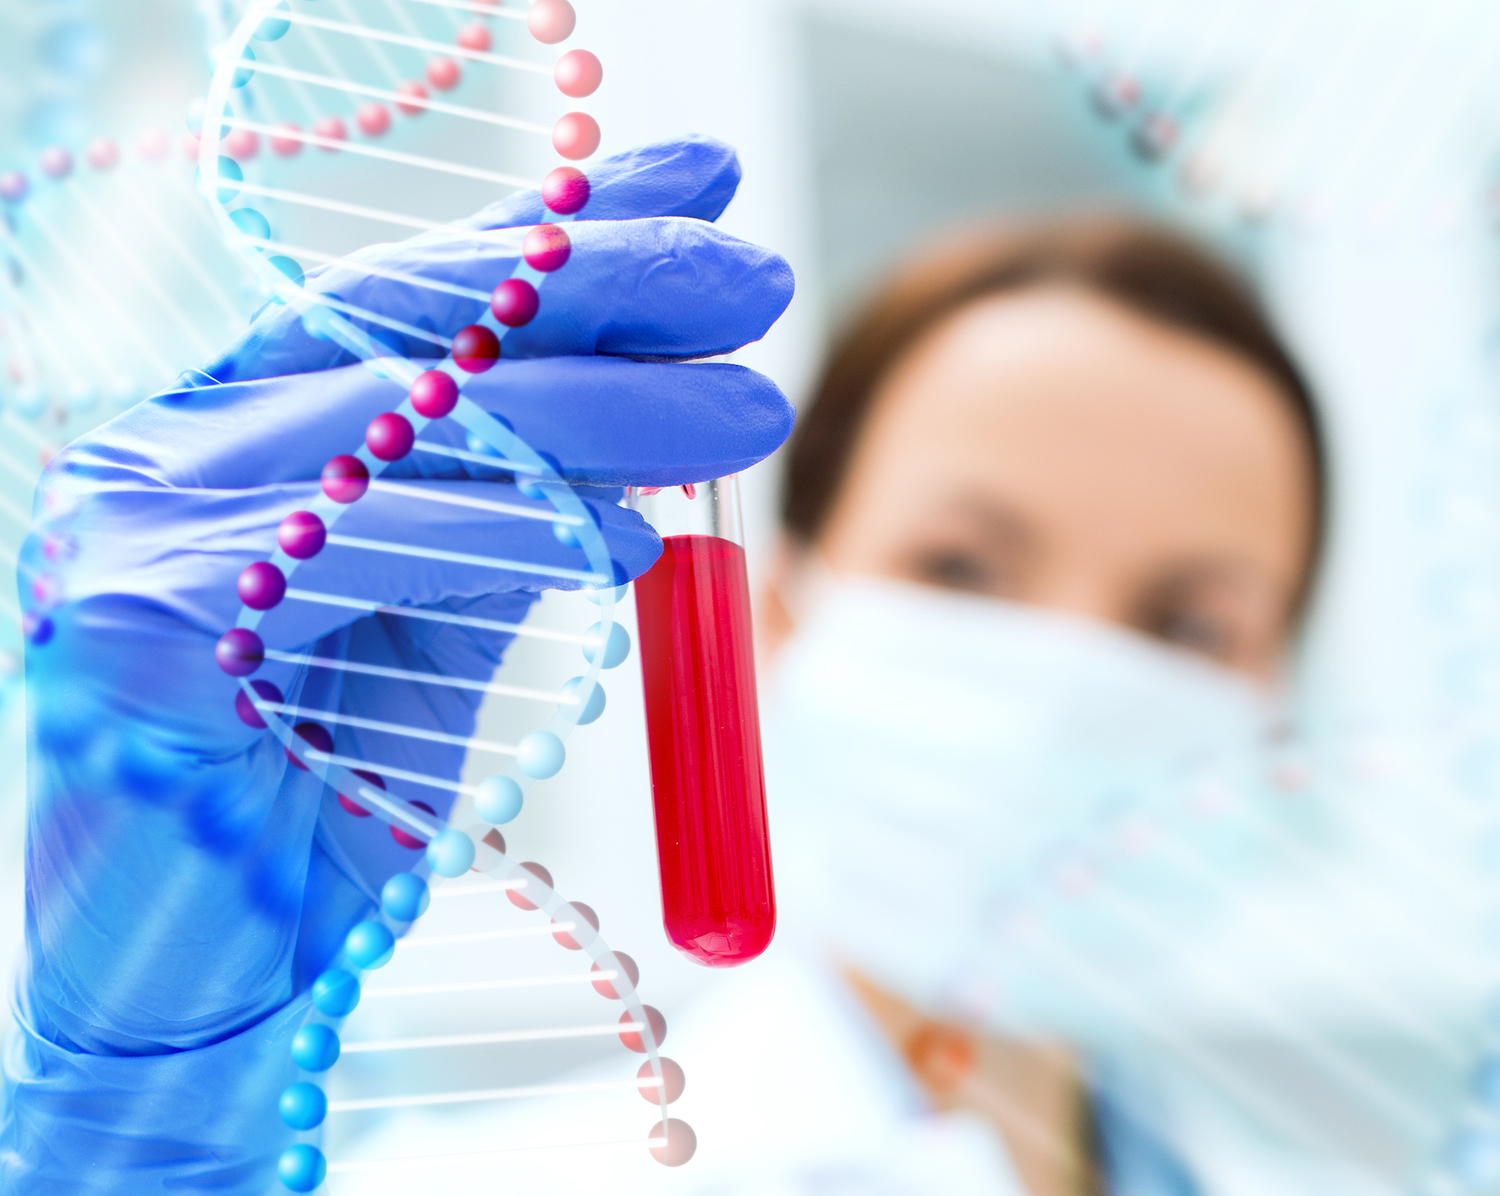 Know More About DNA Testing And It's Safety Concerns